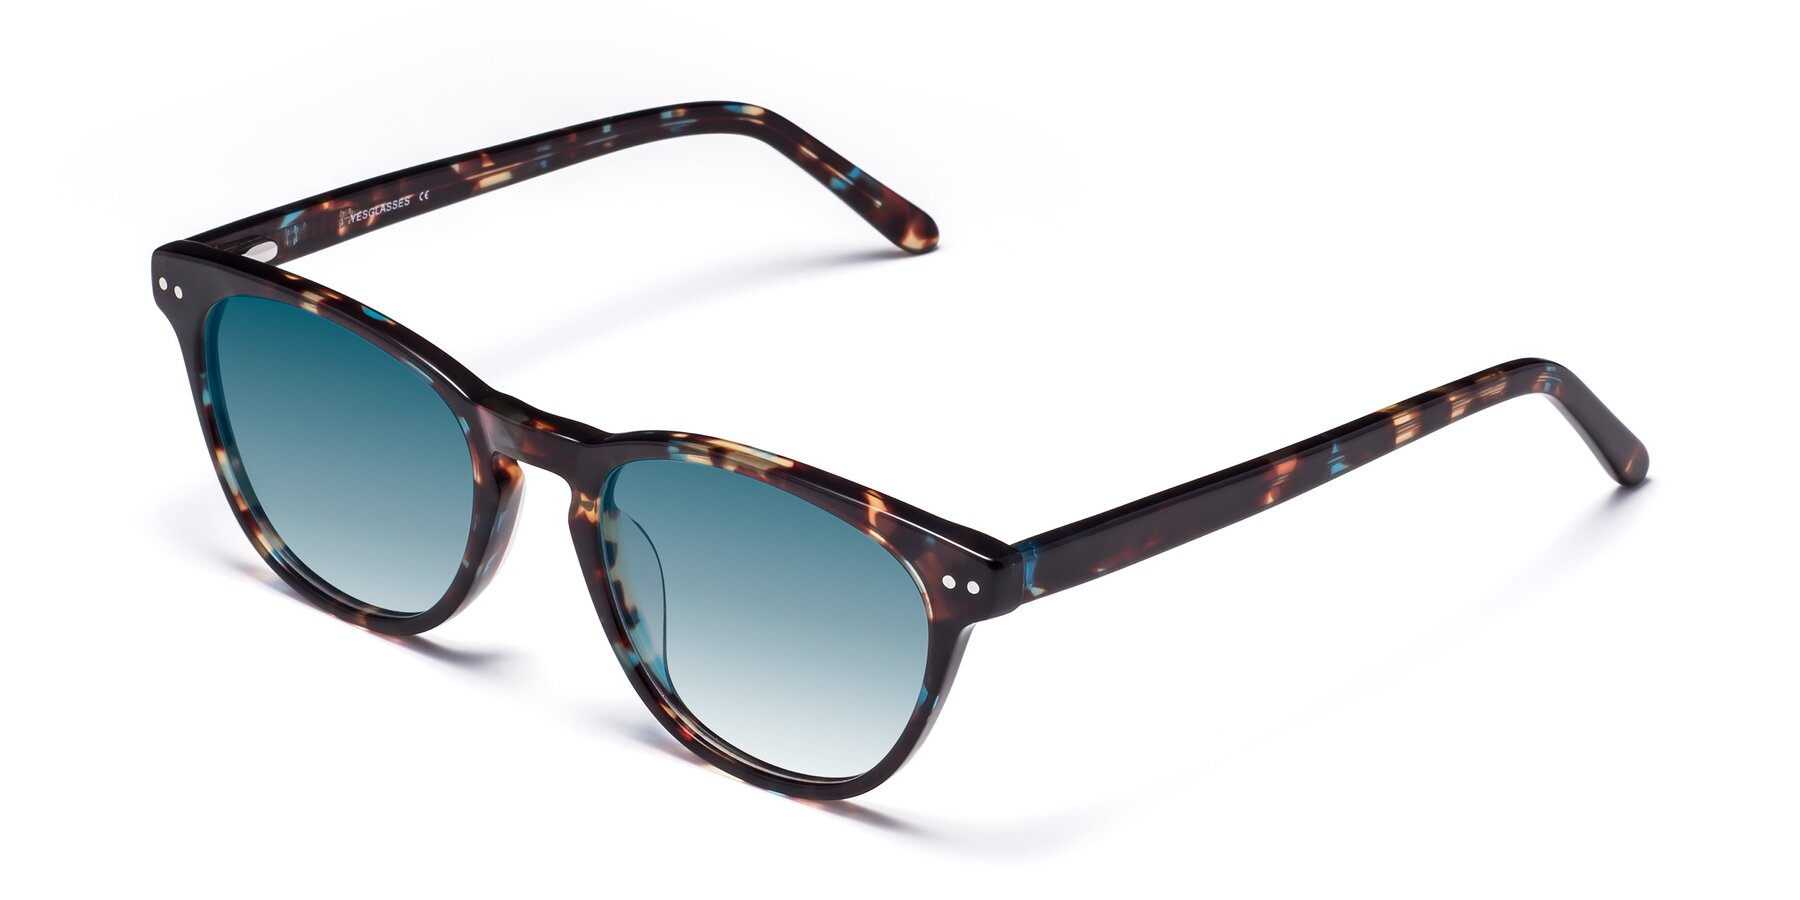 Angle of Blaze in Tortoise-Blue with Blue Gradient Lenses